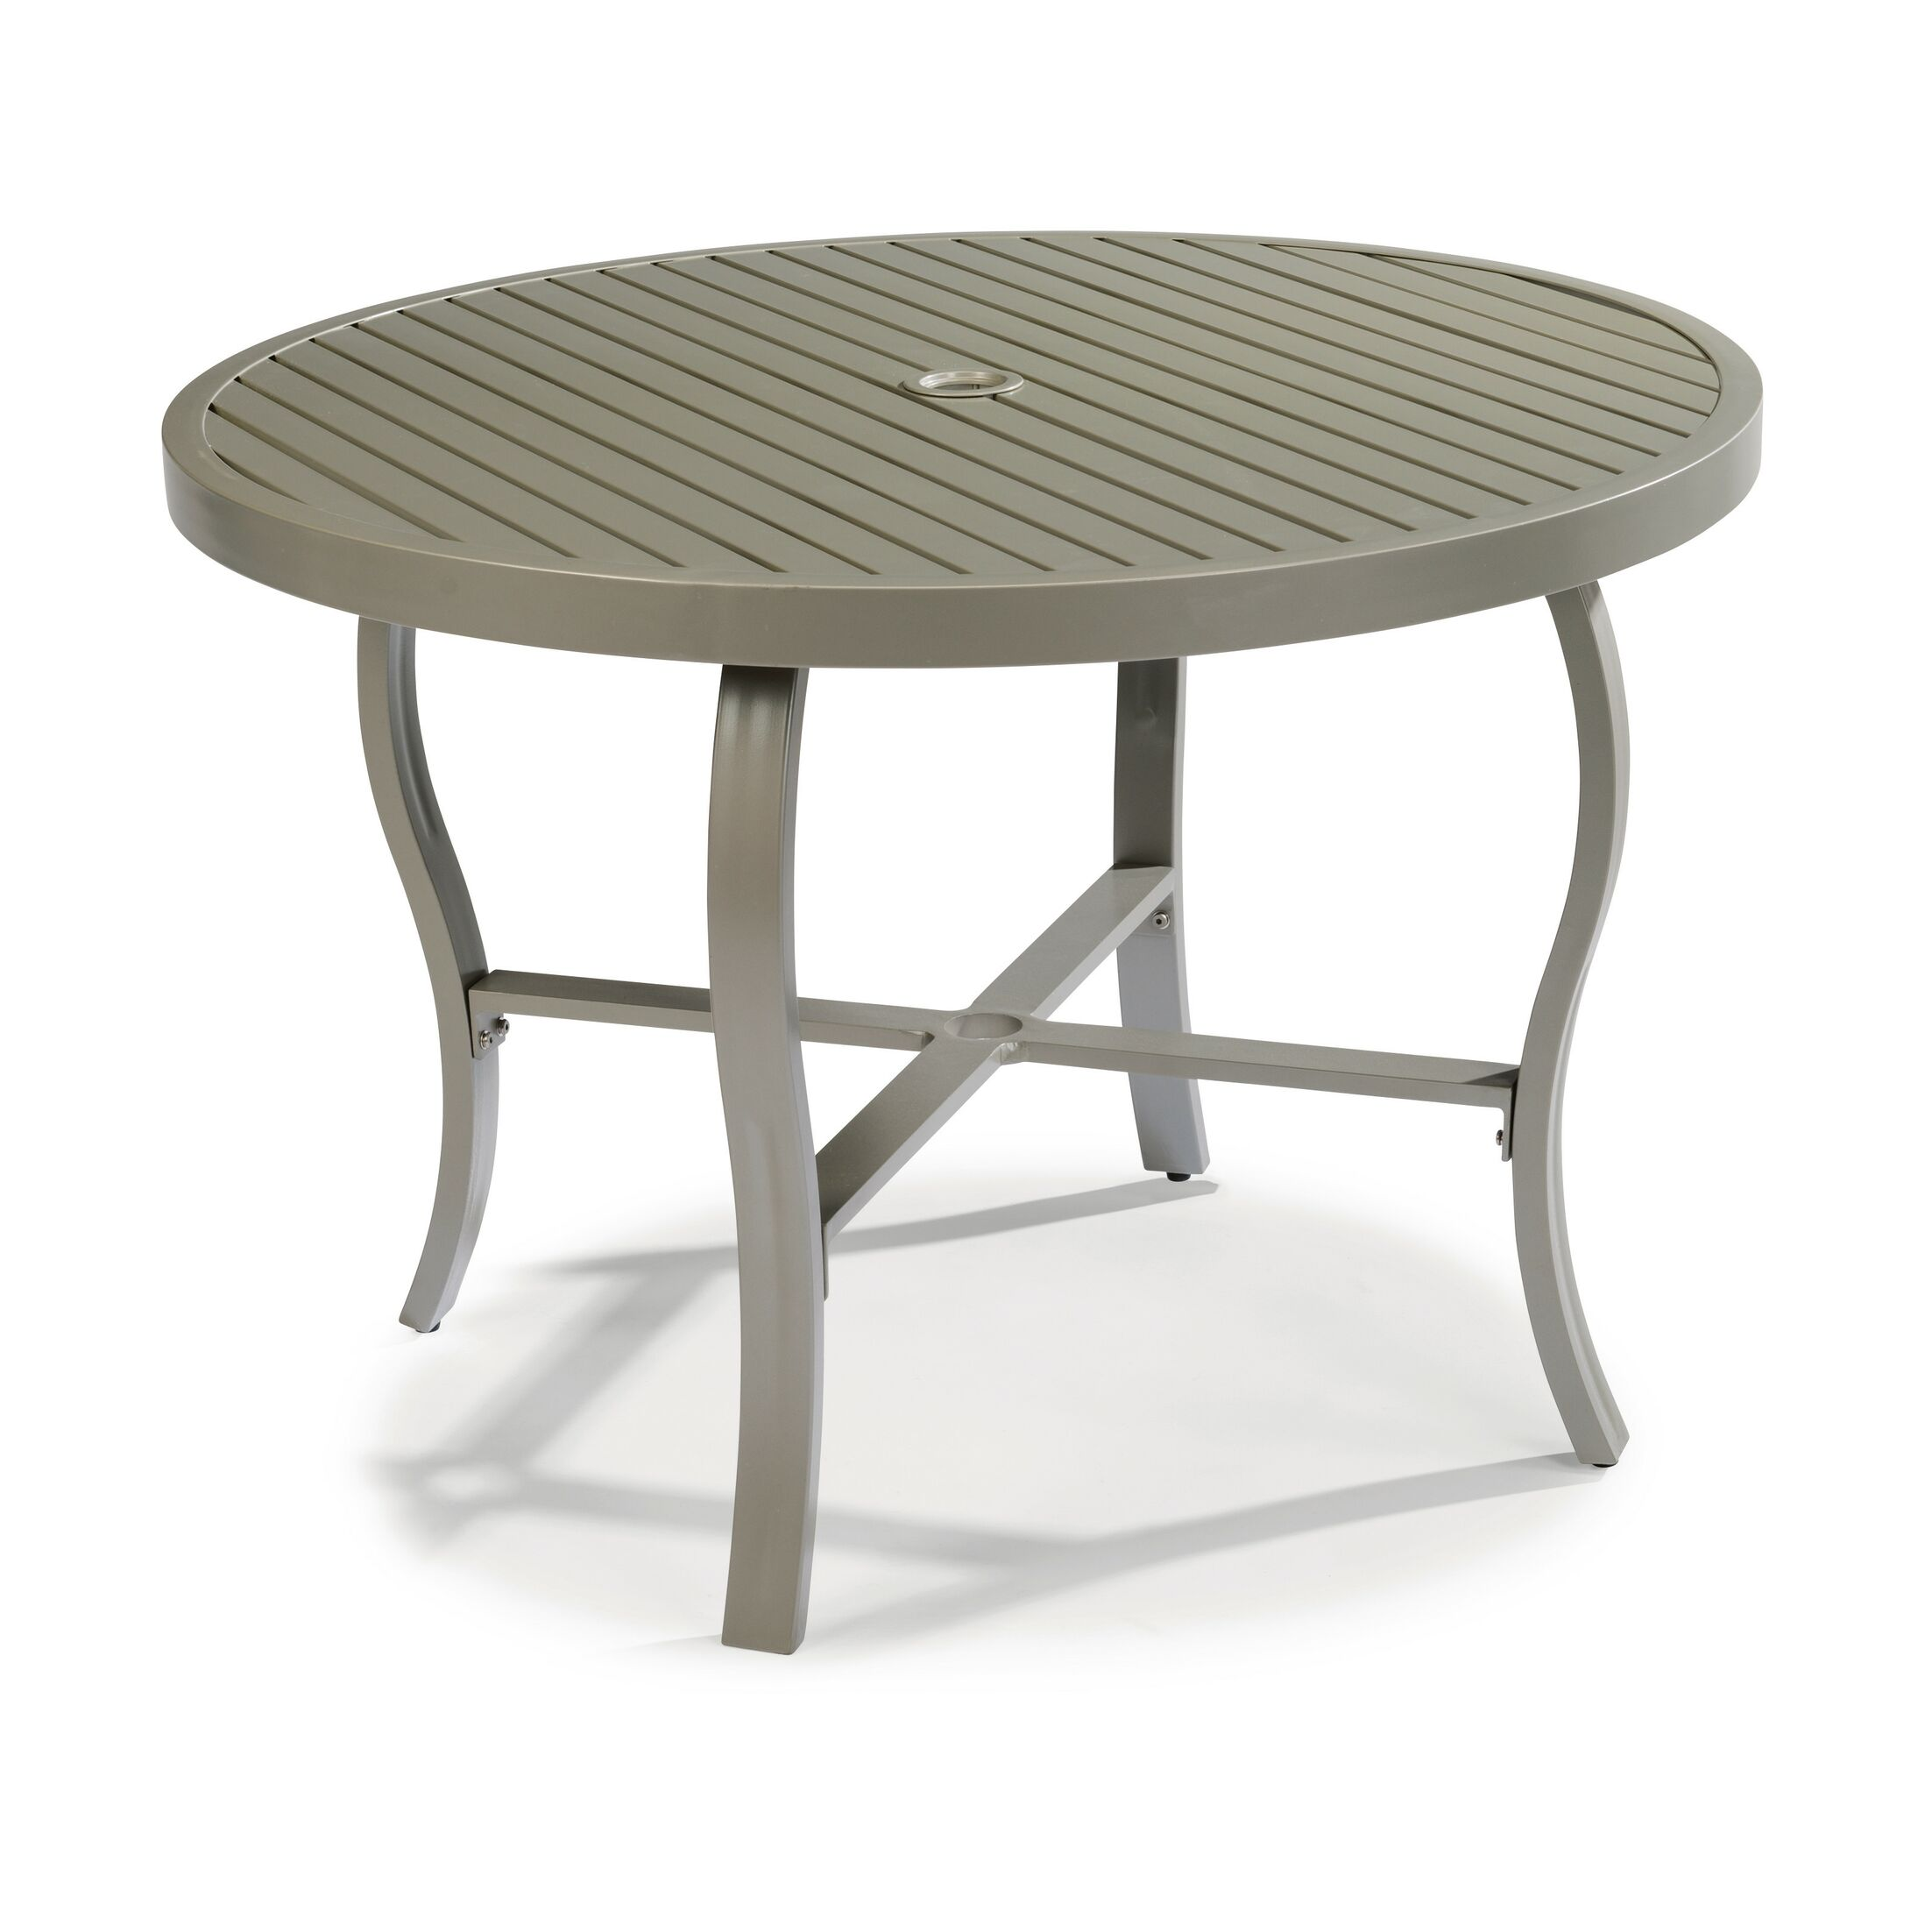 Dinapoli Outdoor Dining Table Table Top Size: 28.75